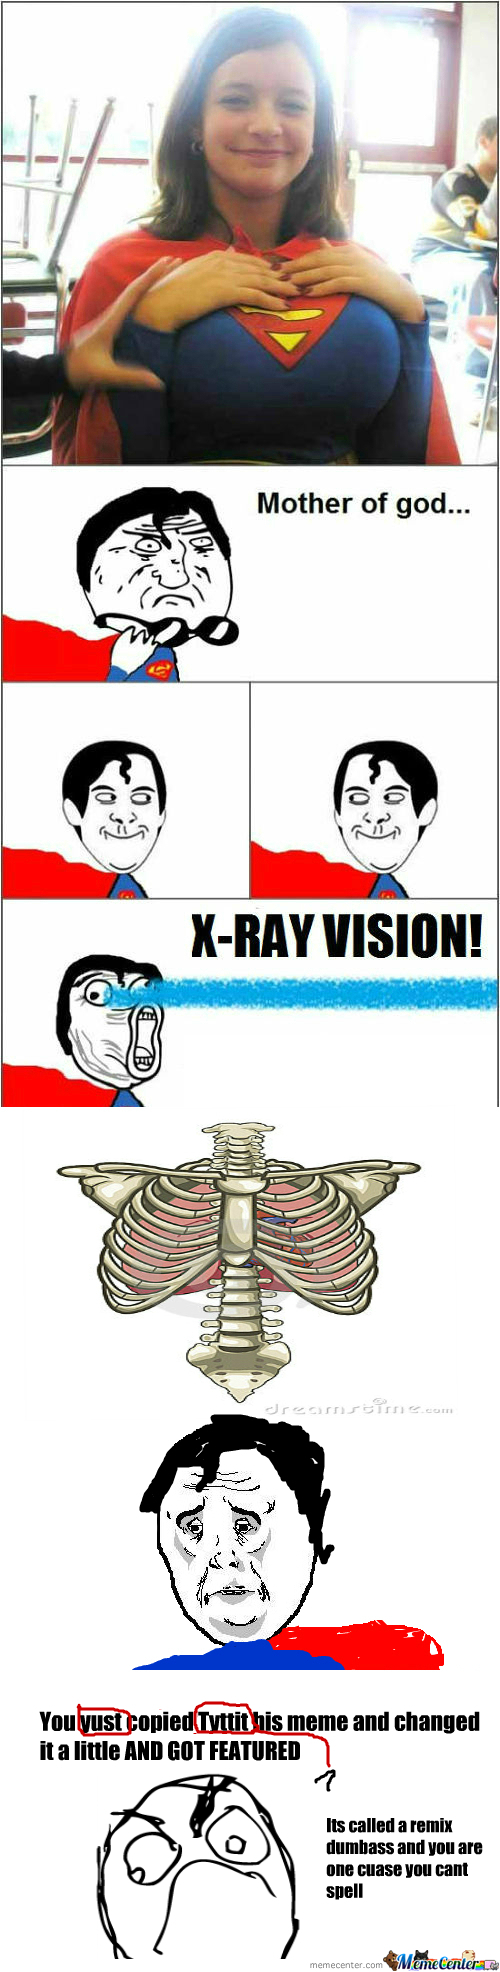 [RMX] [RMX] [RMX] Super Loves His X-Ray Vision